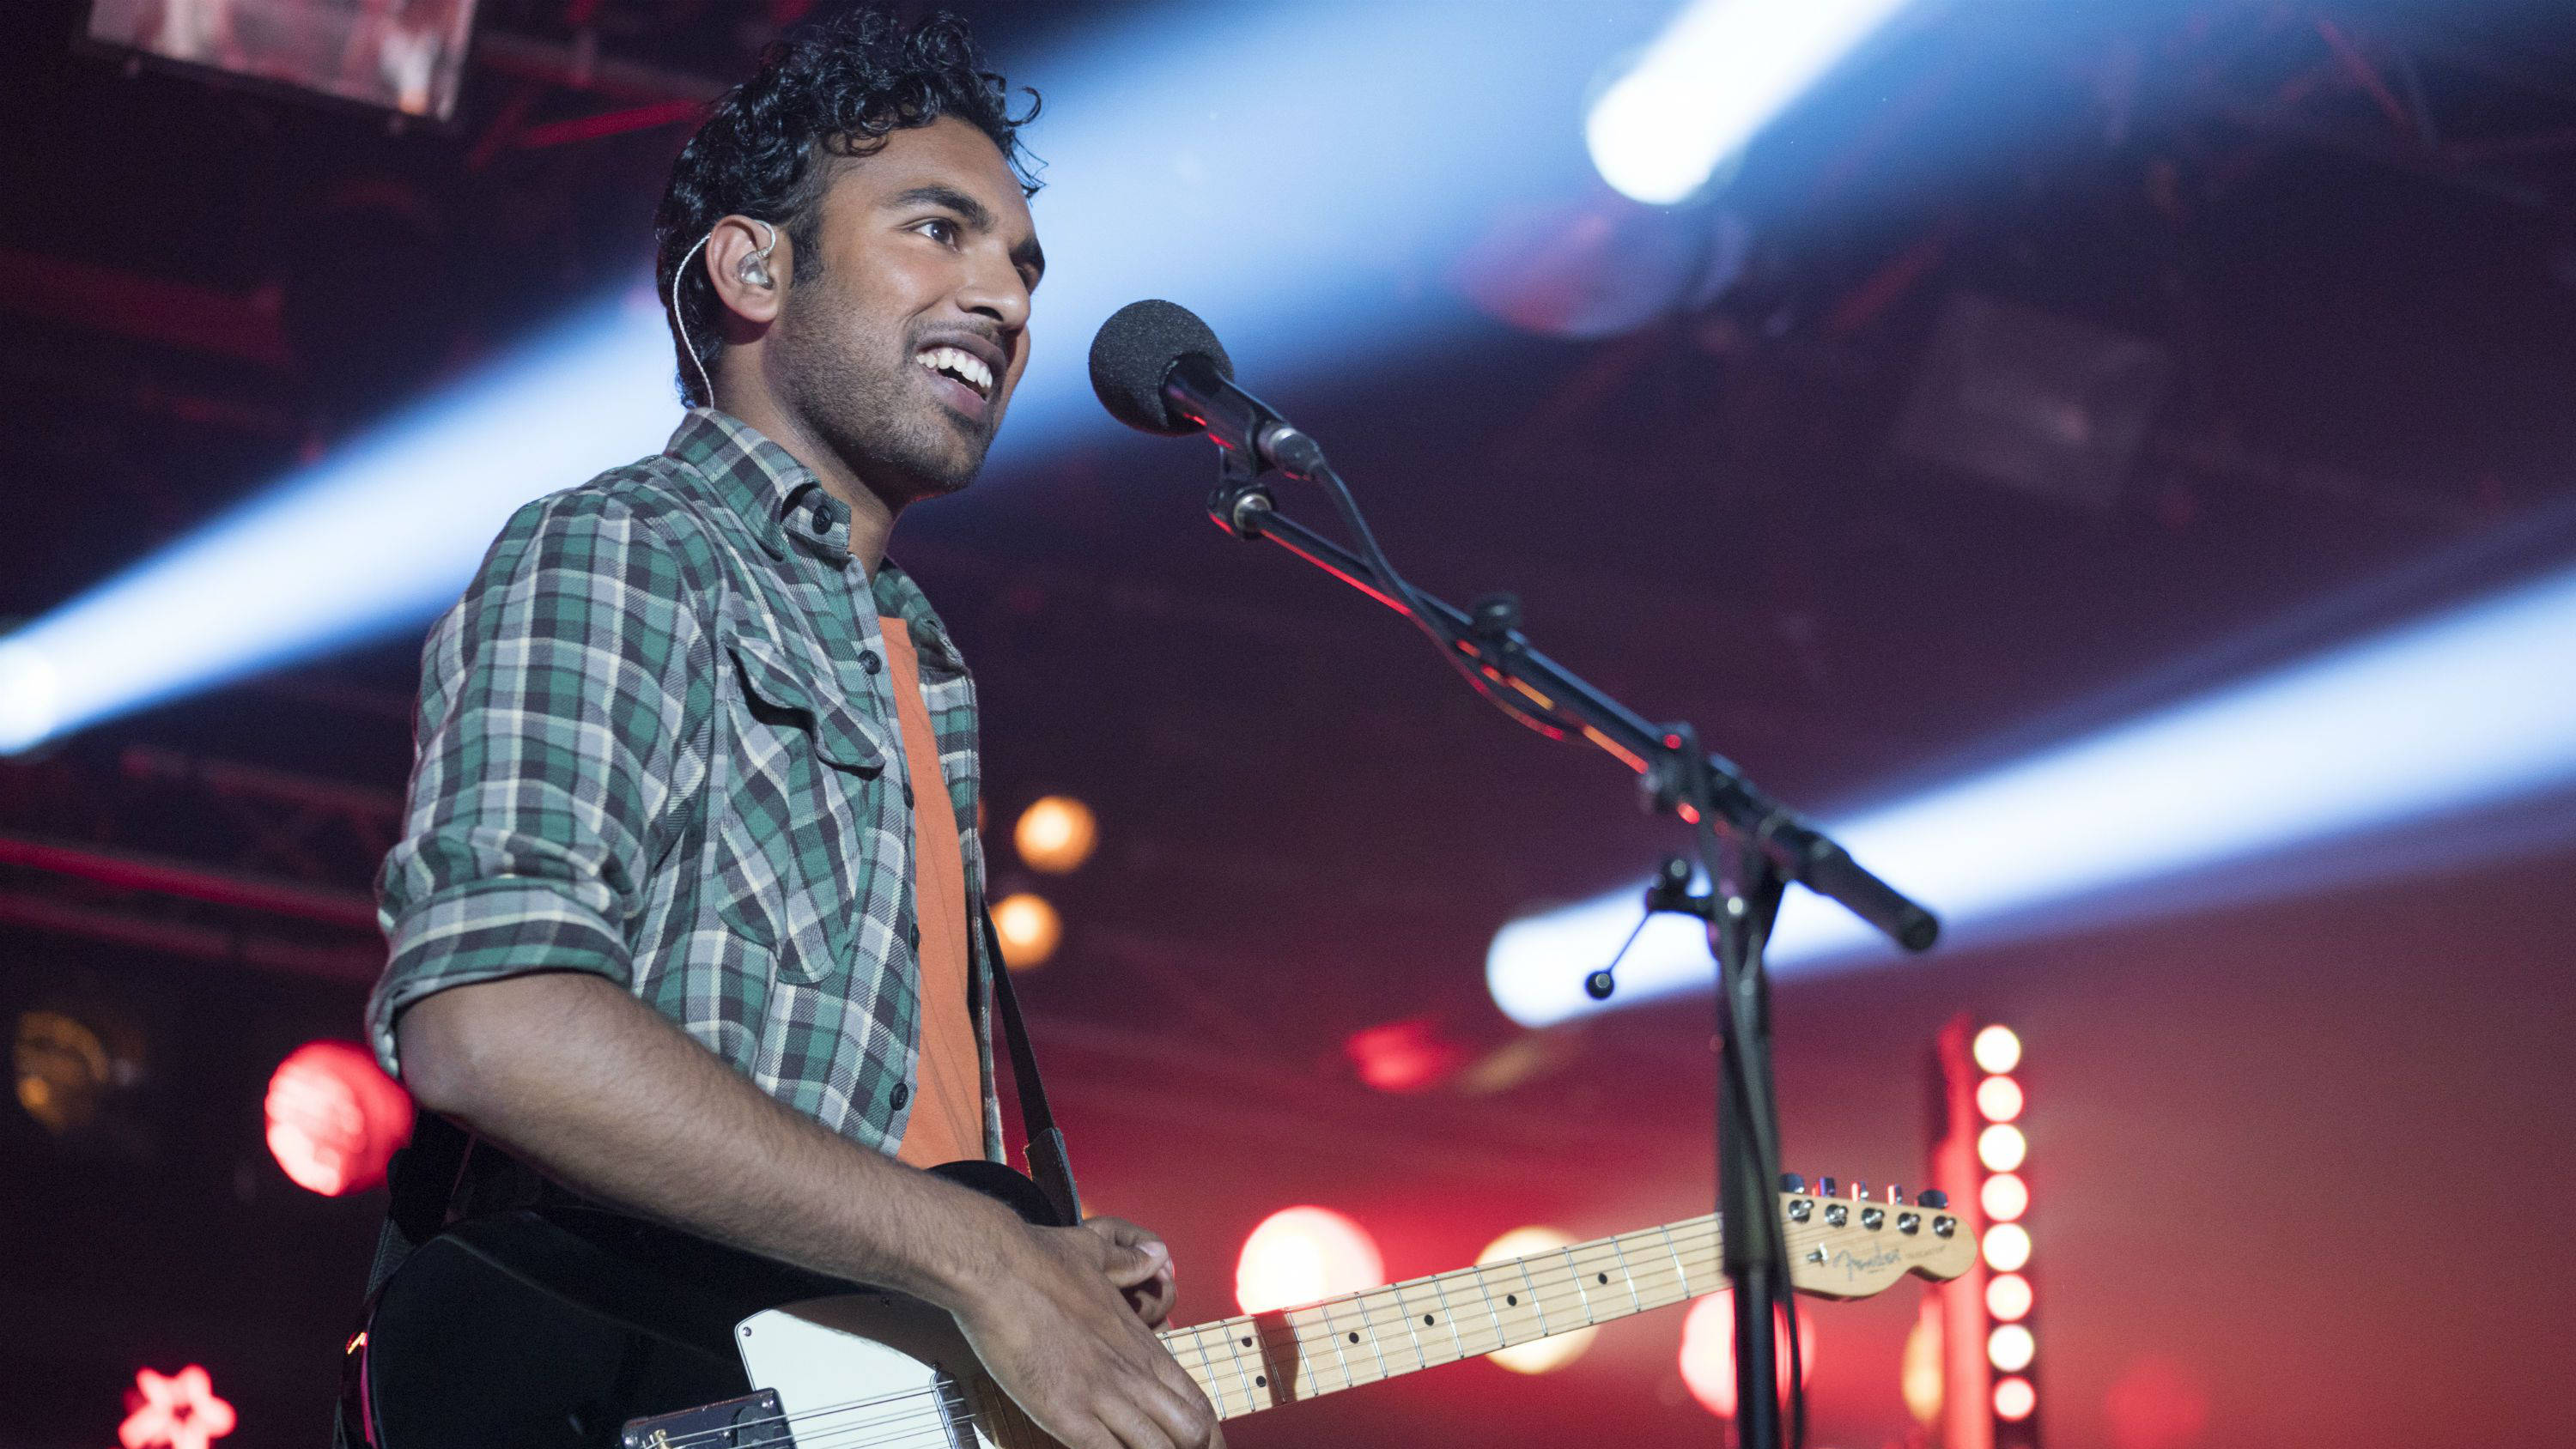 Yesterday Movie Can Himesh Patel Really Sing And Play The Guitar Smooth